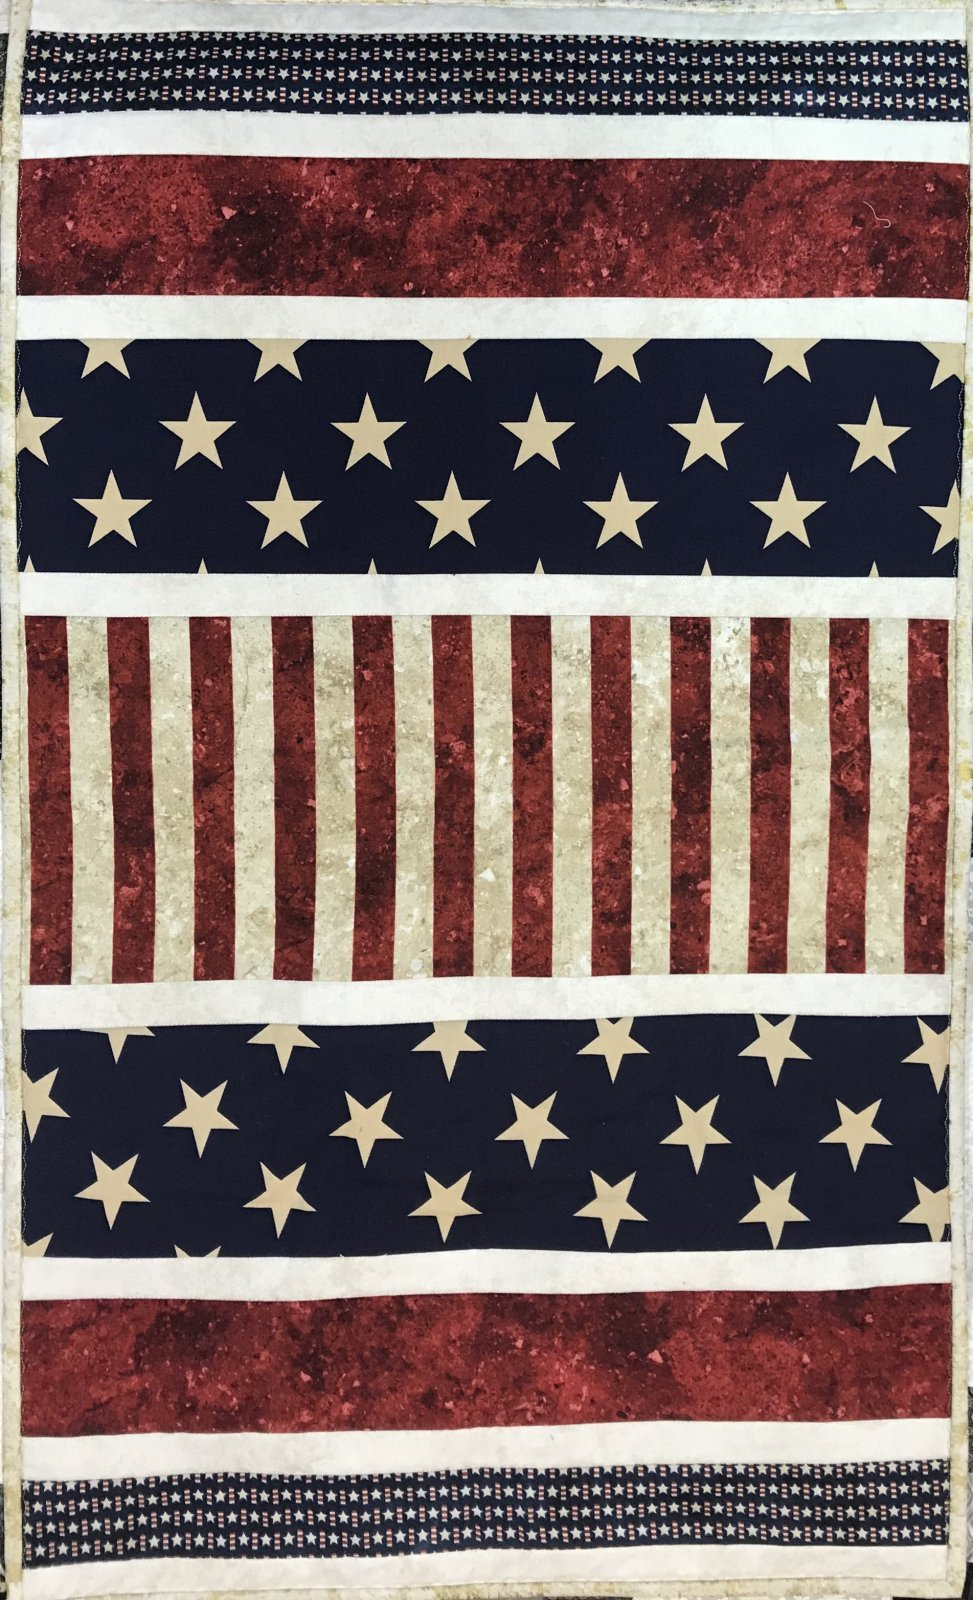 Patriotic Wall Hanging/Runner 21 x 35